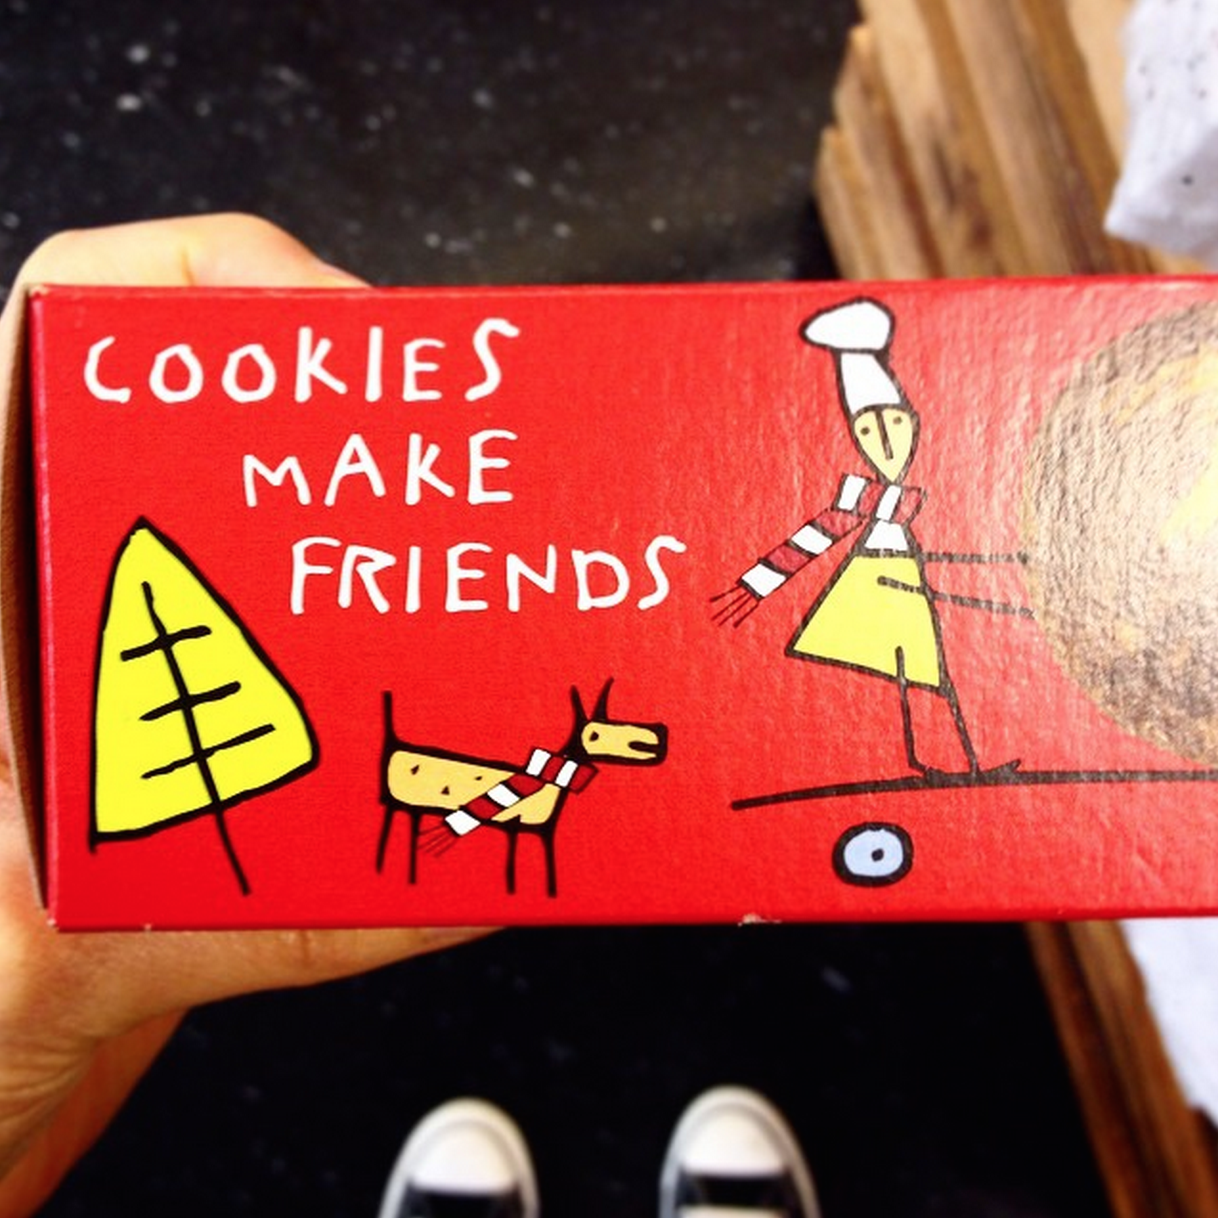 Cookies make friends!